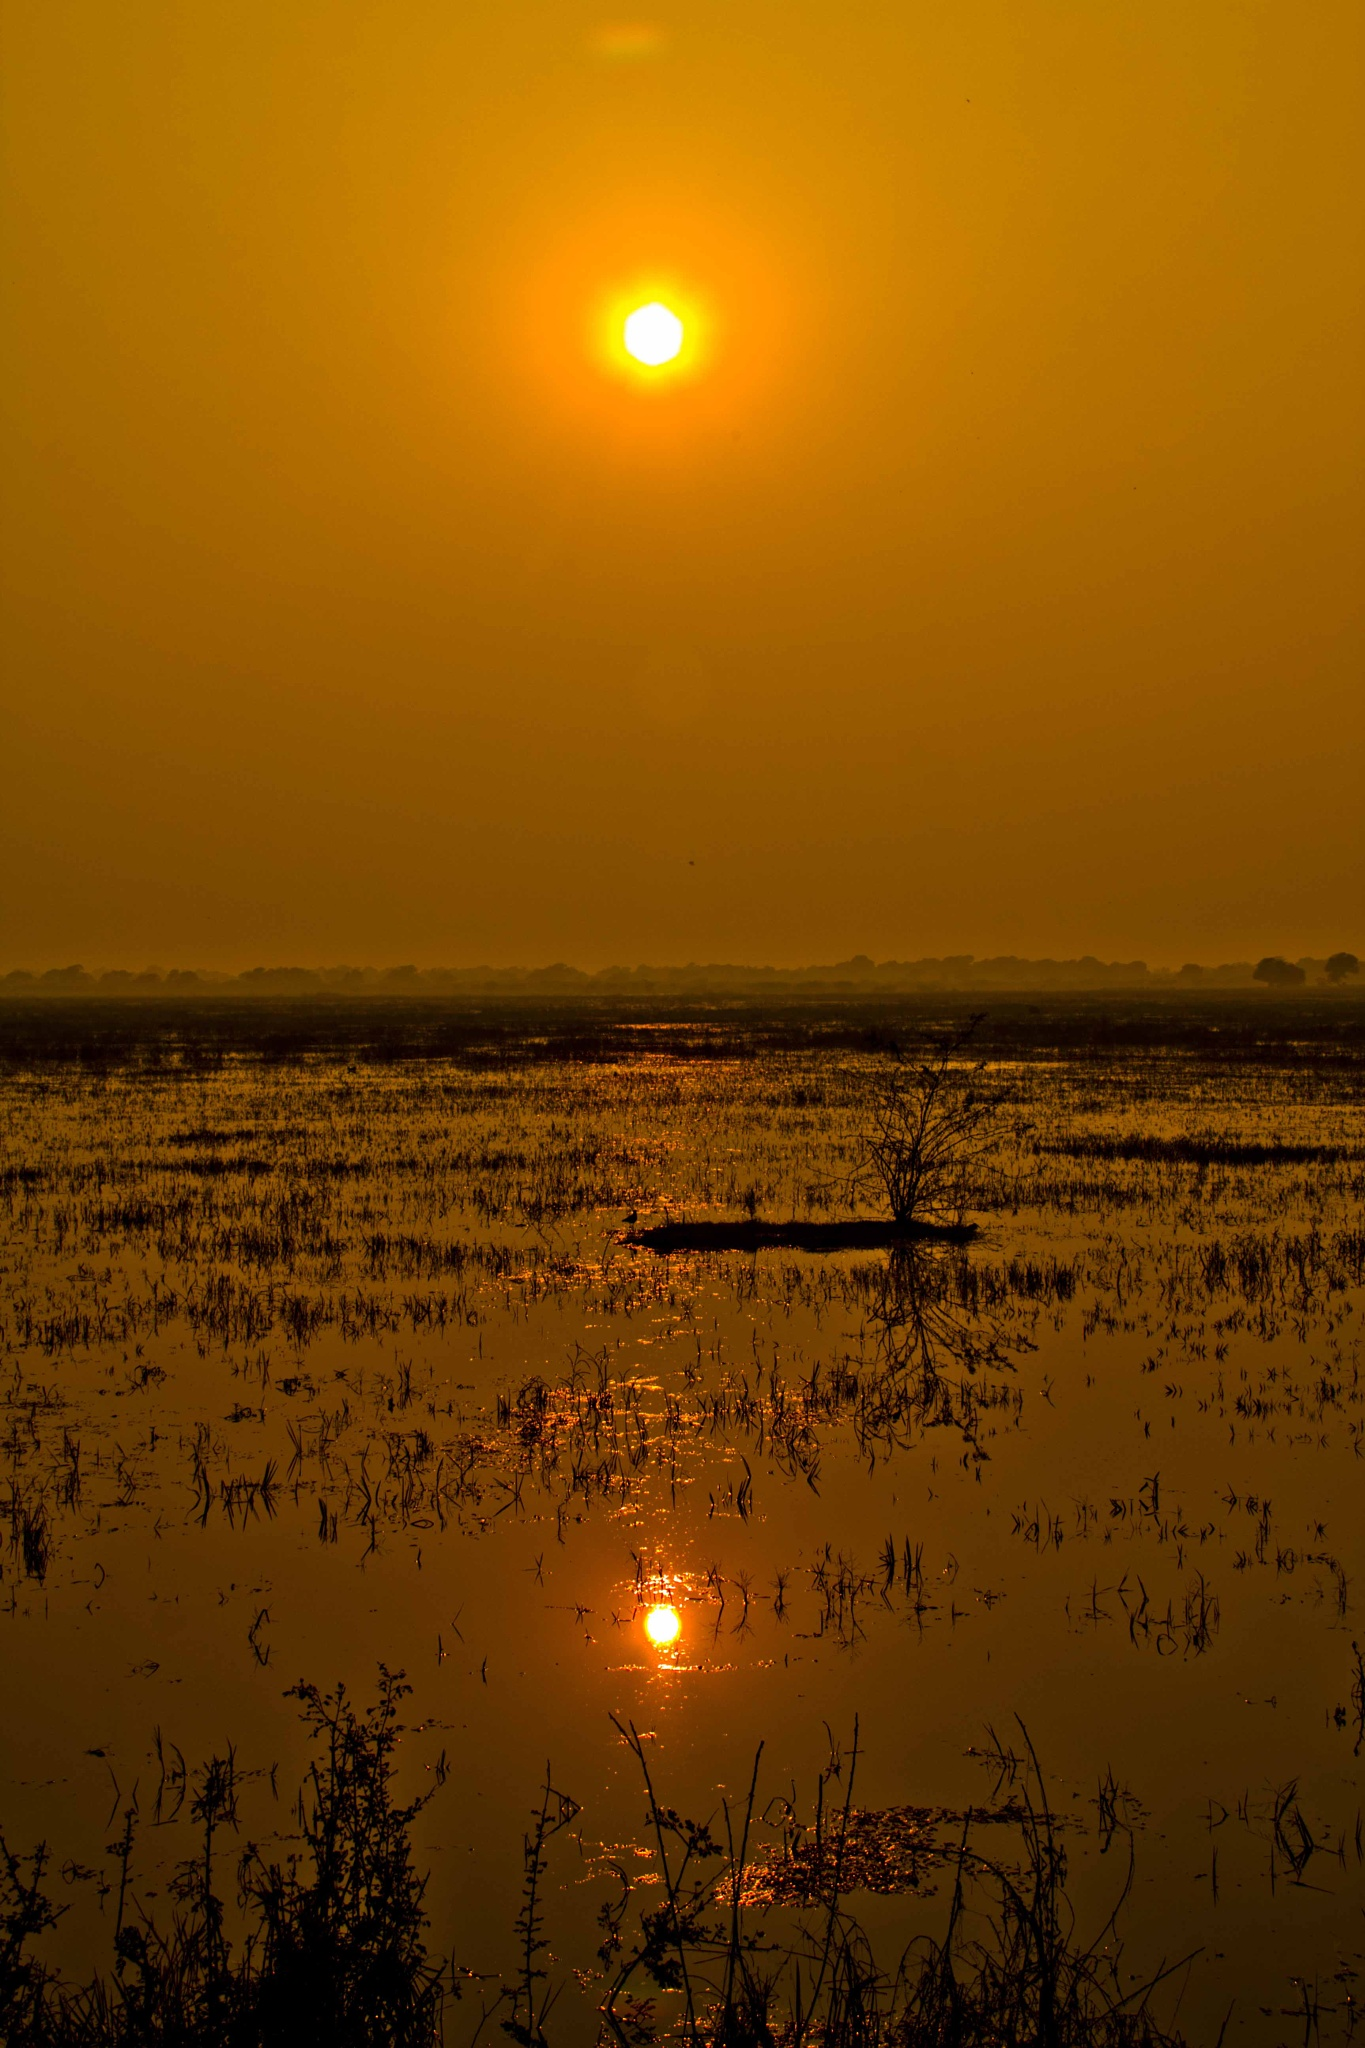 Golden Sunset by Anant Wagle